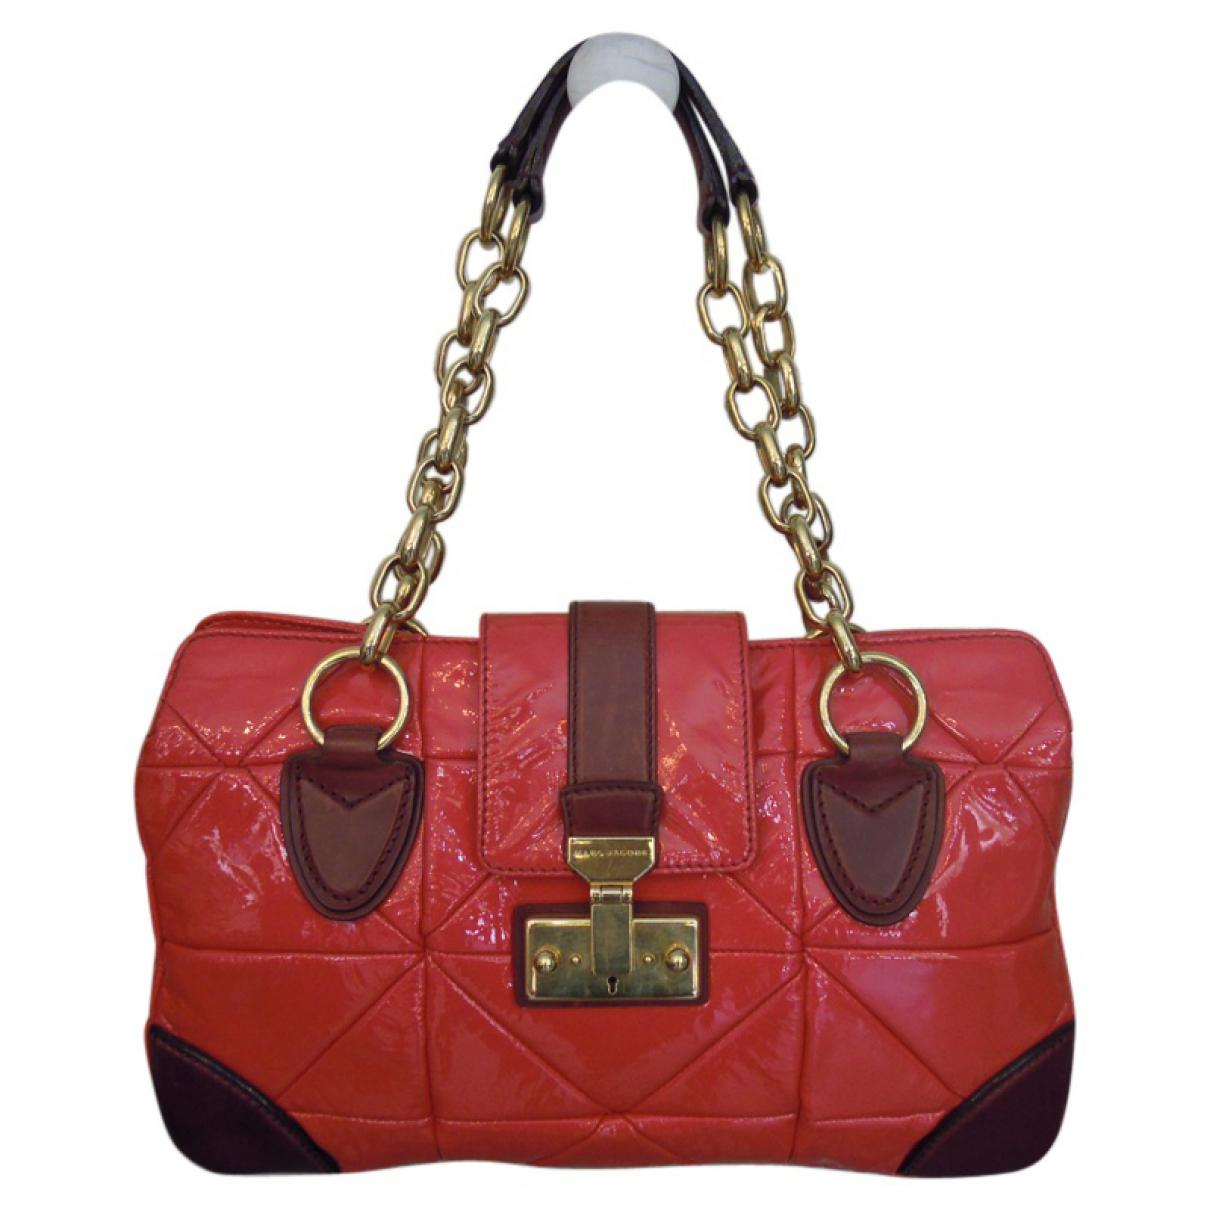 Marc Jacobs Pre-owned - Leather handbag xm3aA1wruC